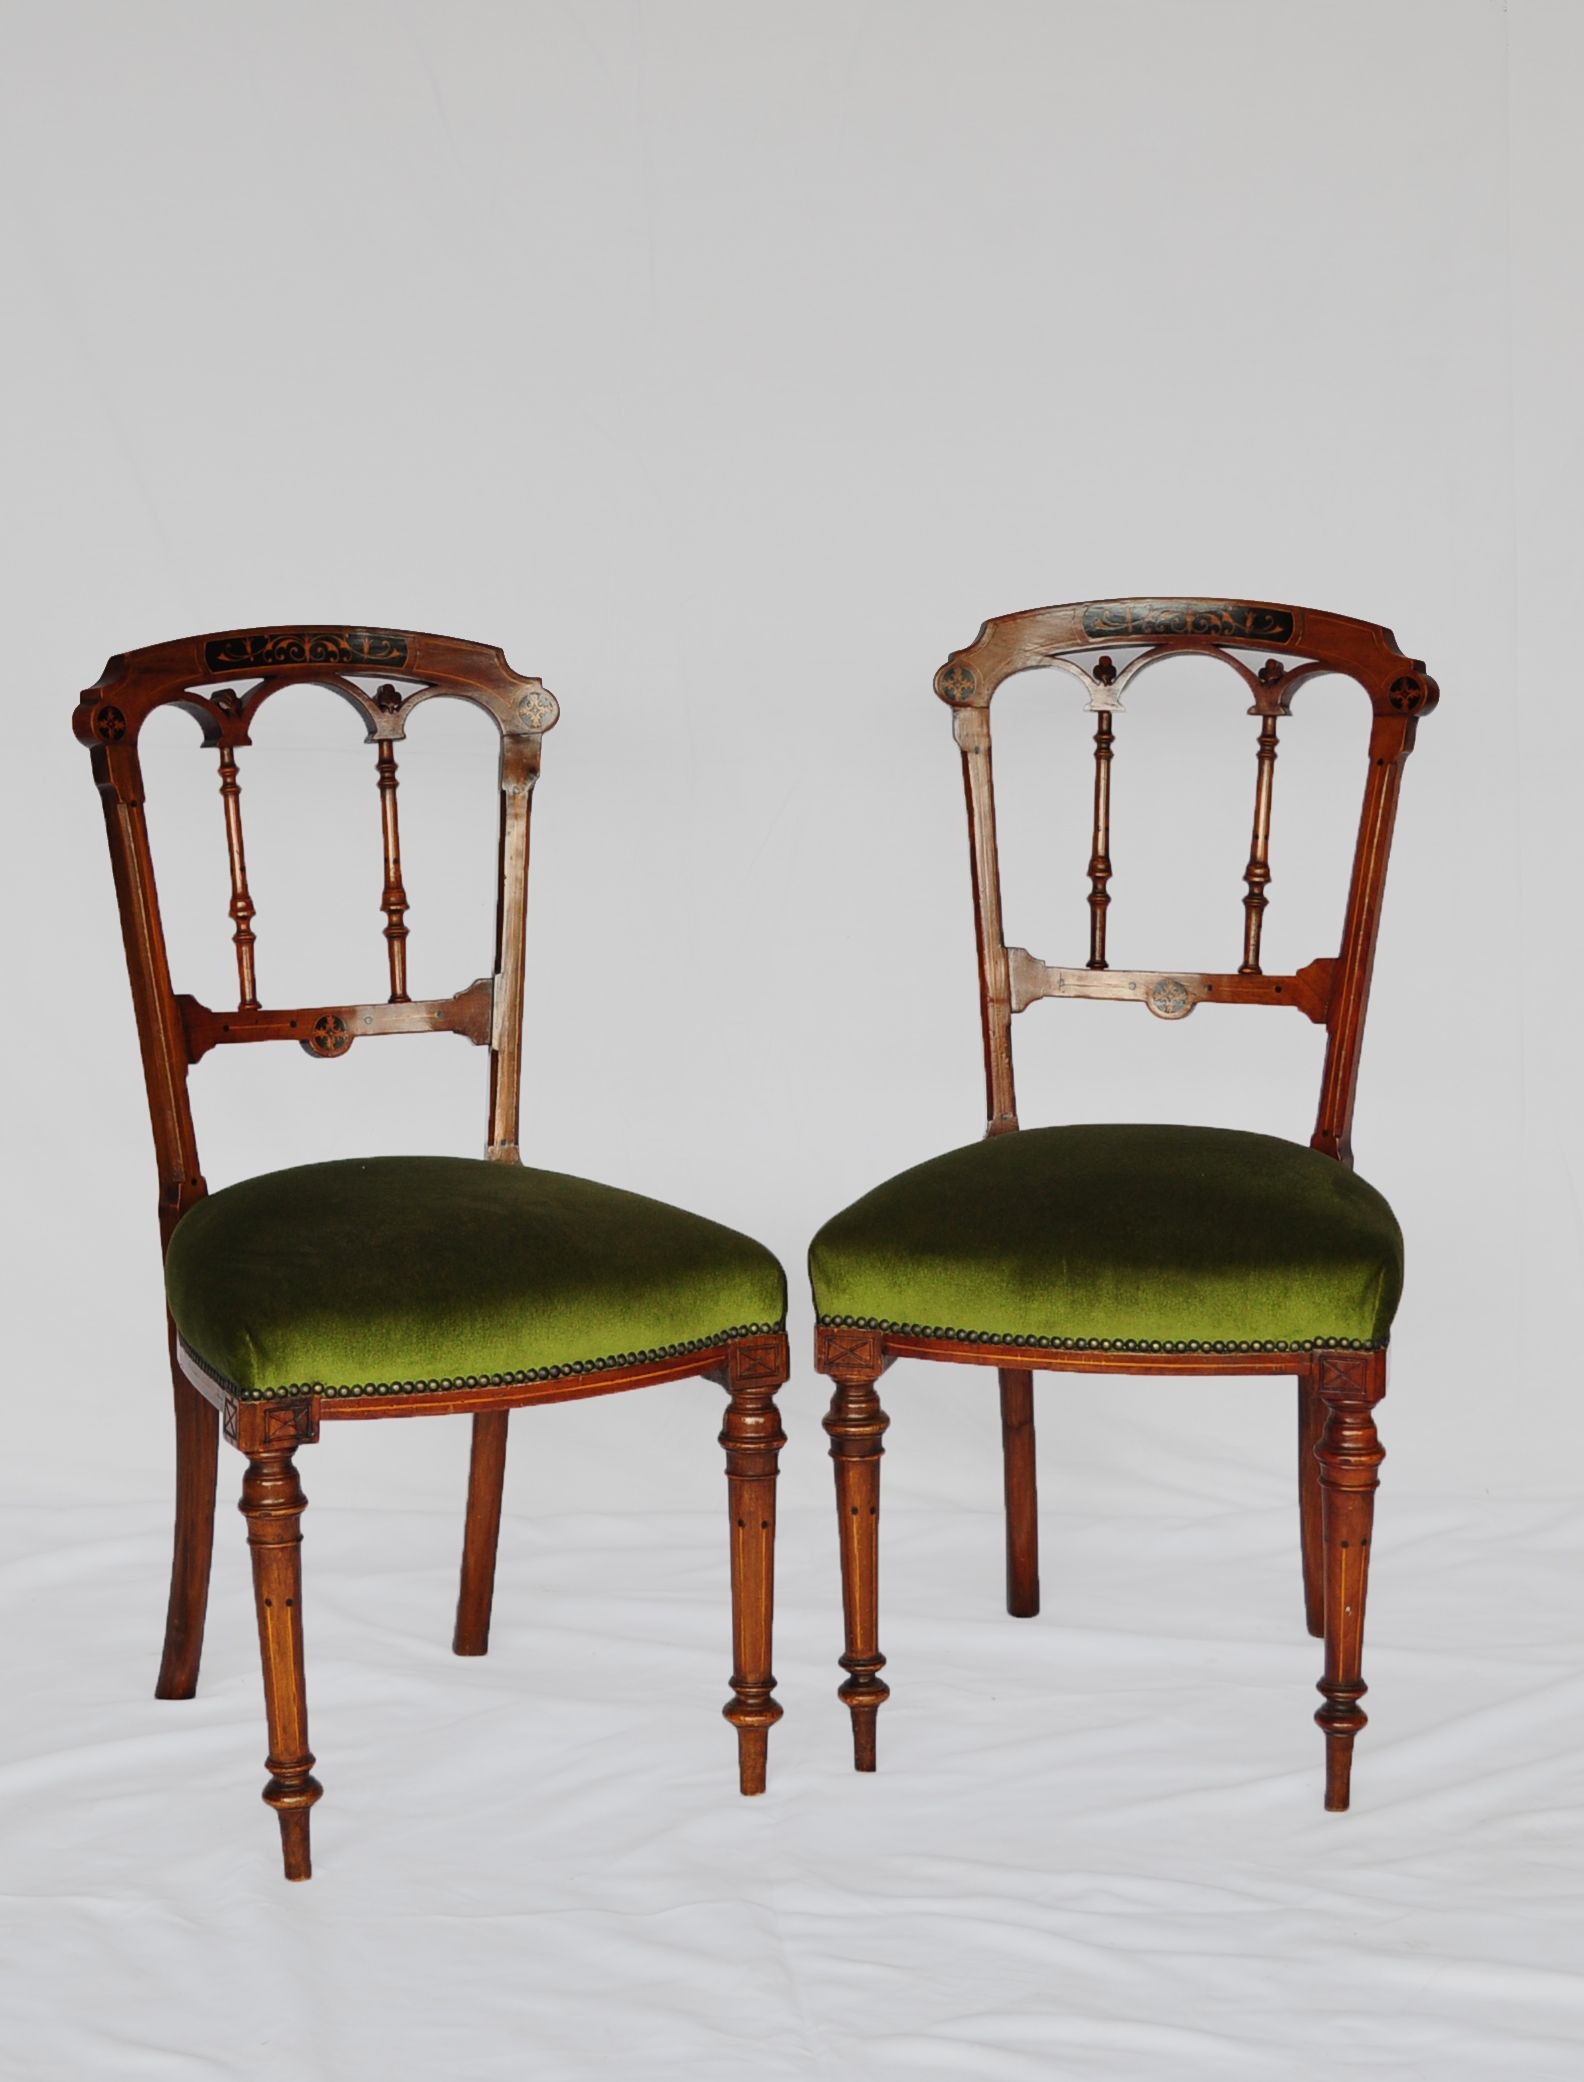 A set of six george iii antique mahogany chairs with green seats www northcliffantiques com georgeiii chairs antique mahogany southafrica